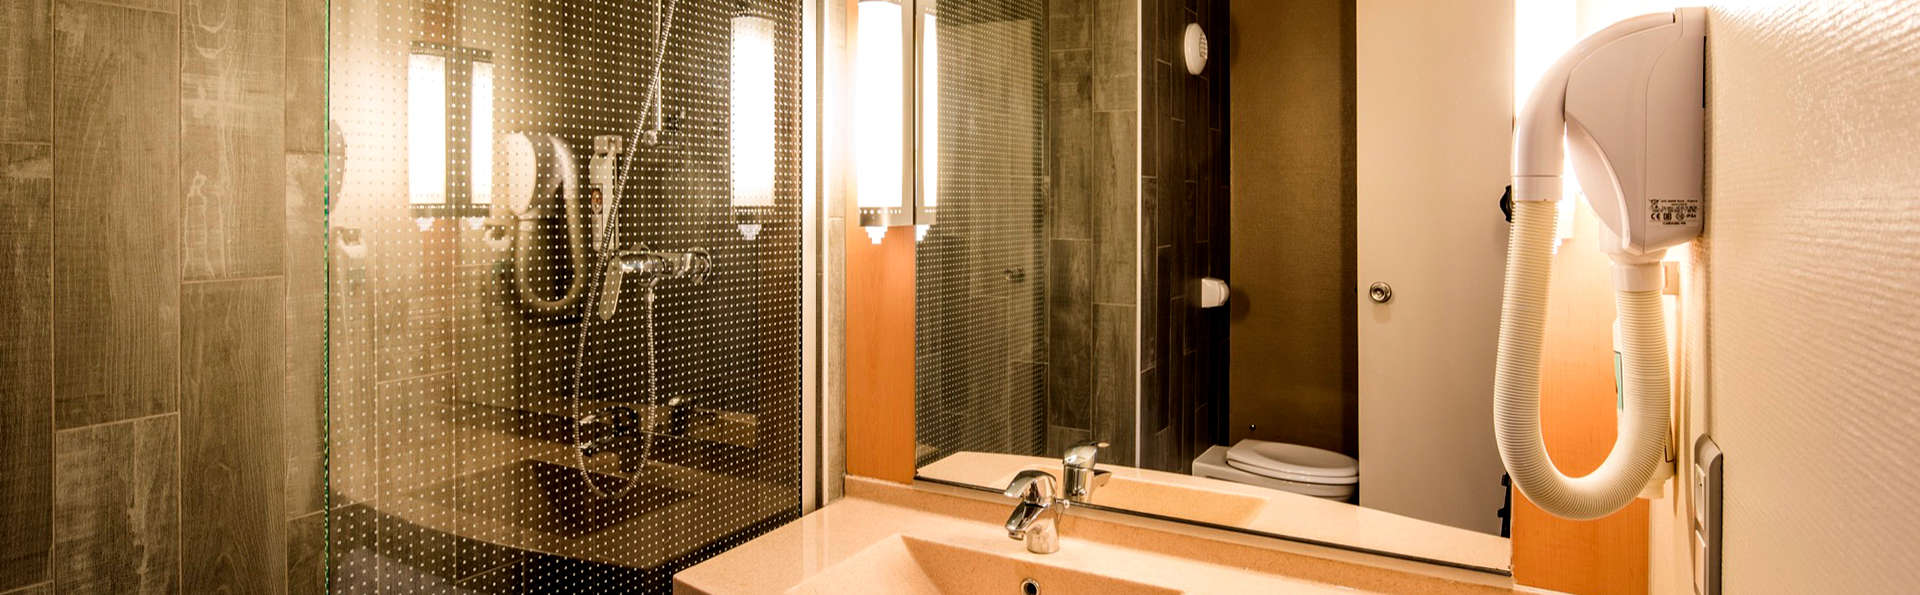 Ibis Metz Nord - EDIT_NEW_BATHROOM.jpg